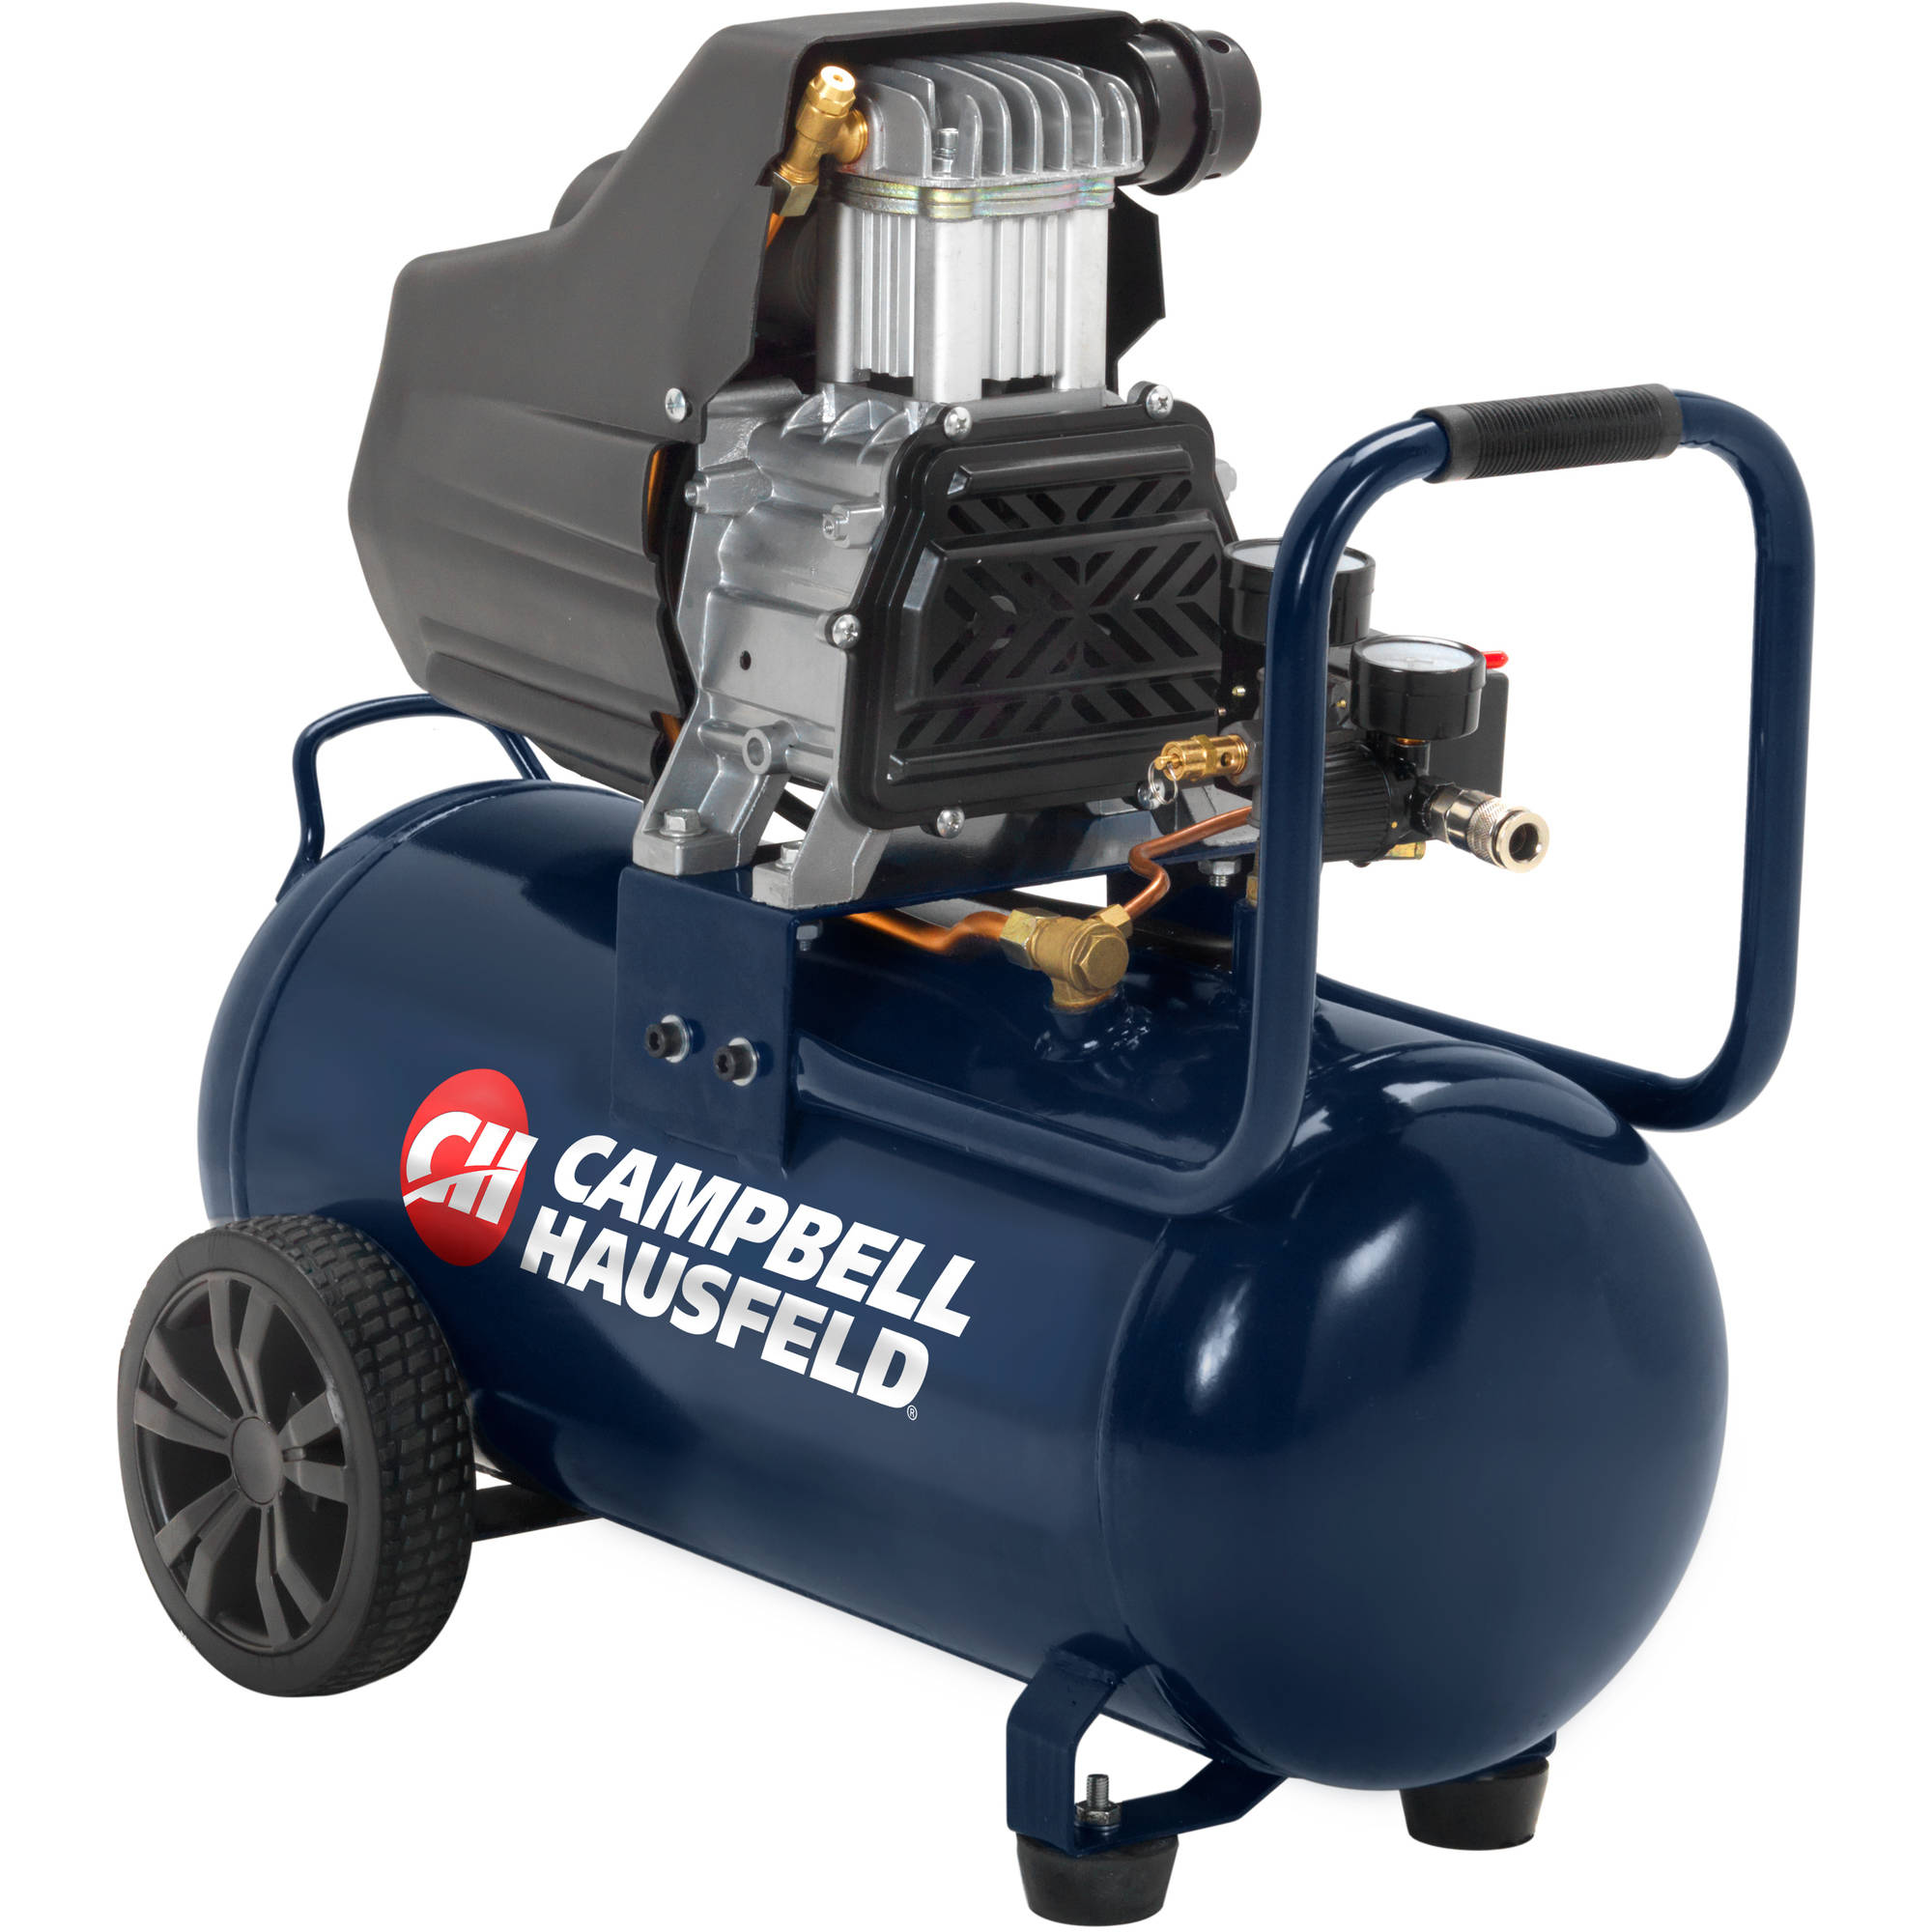 Campbell Hausfeld 8g Oil-Free Air Compressor